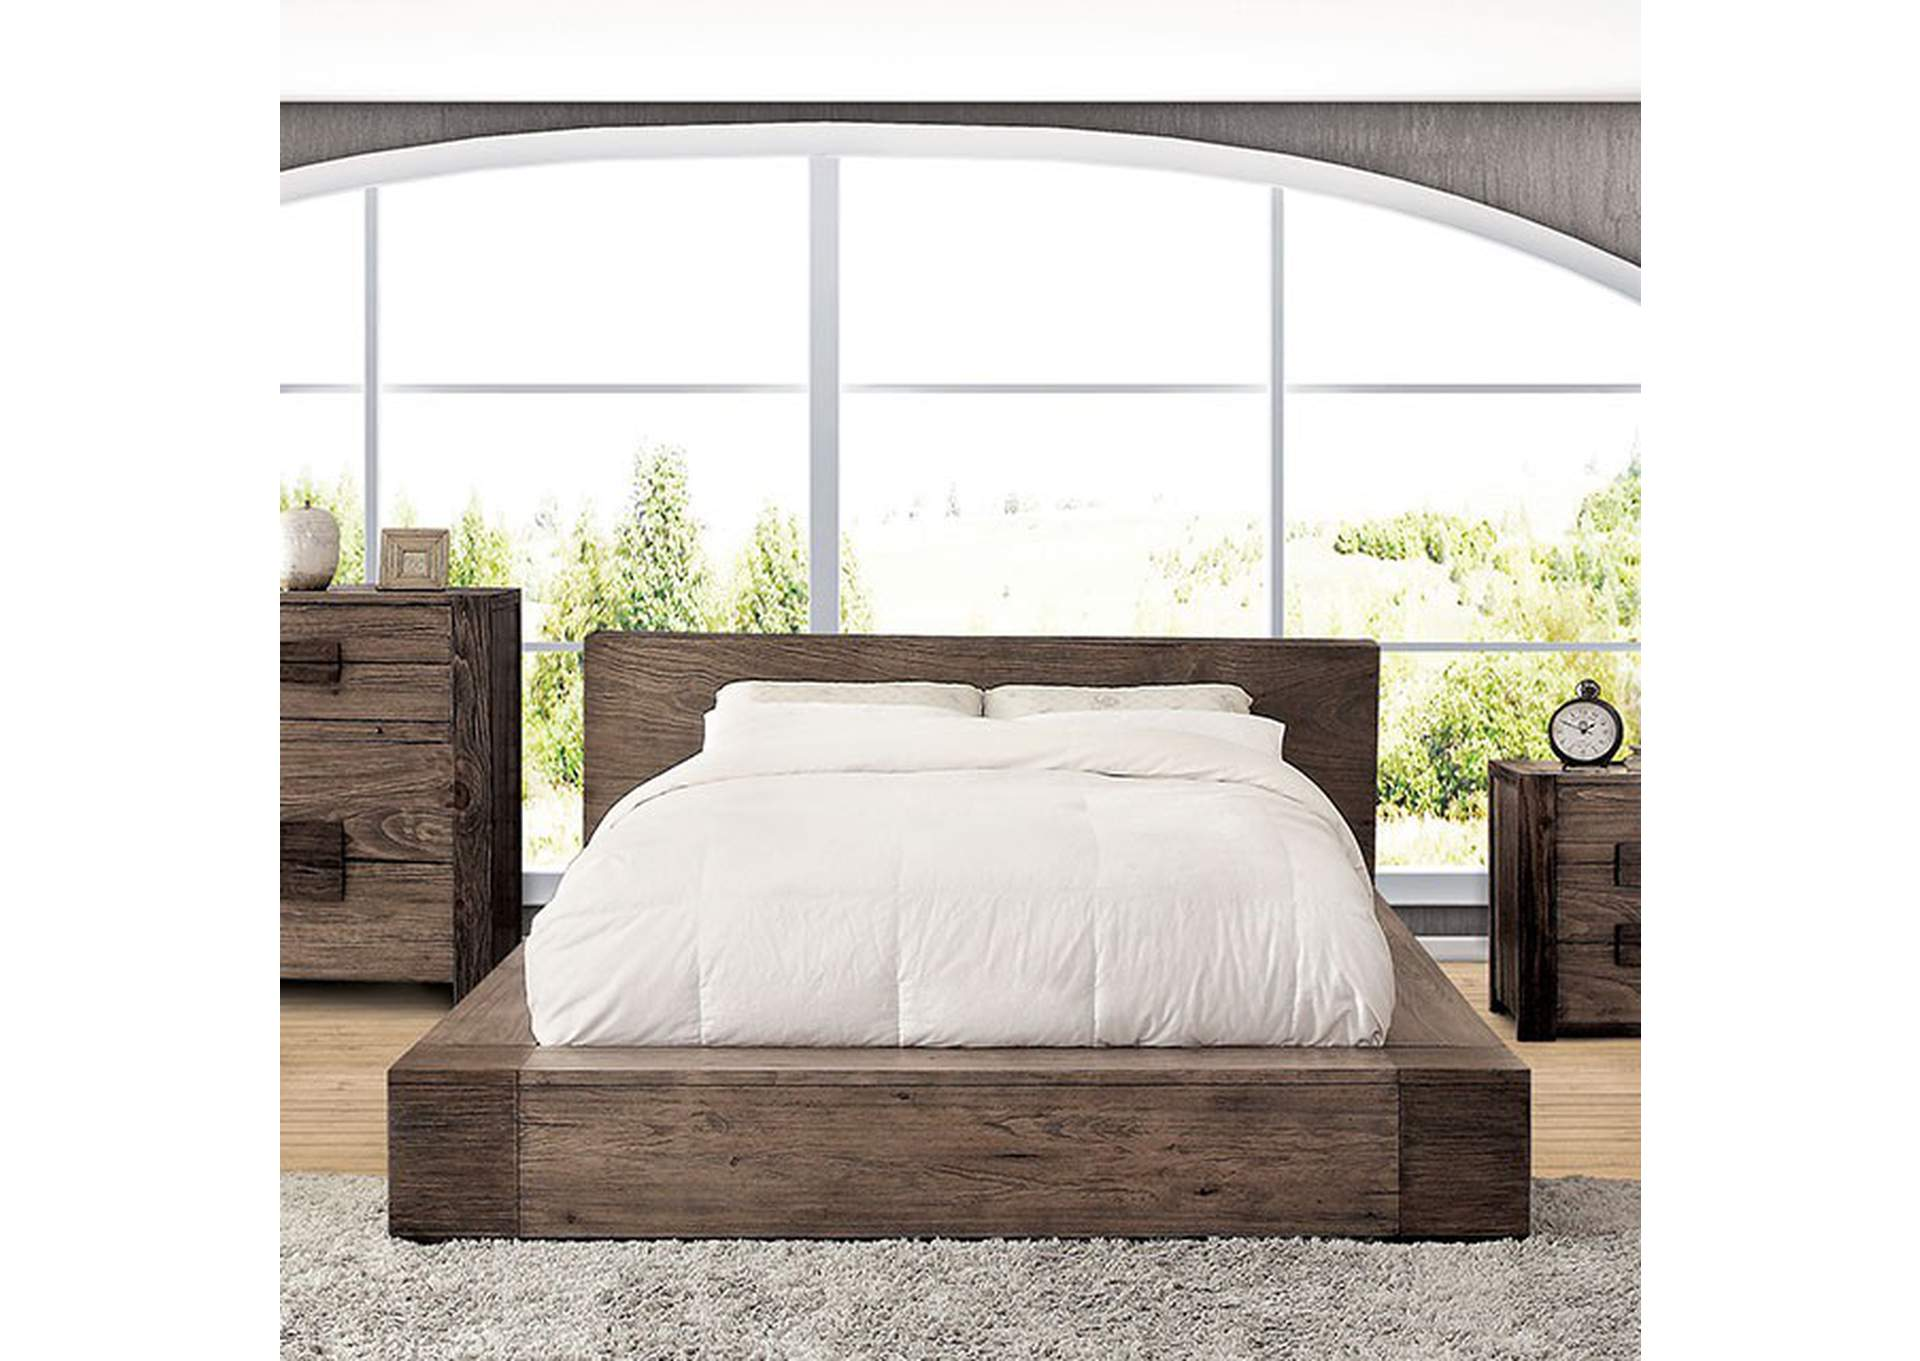 Janeiro Rustic Natural Tone Queen Bed,Furniture of America